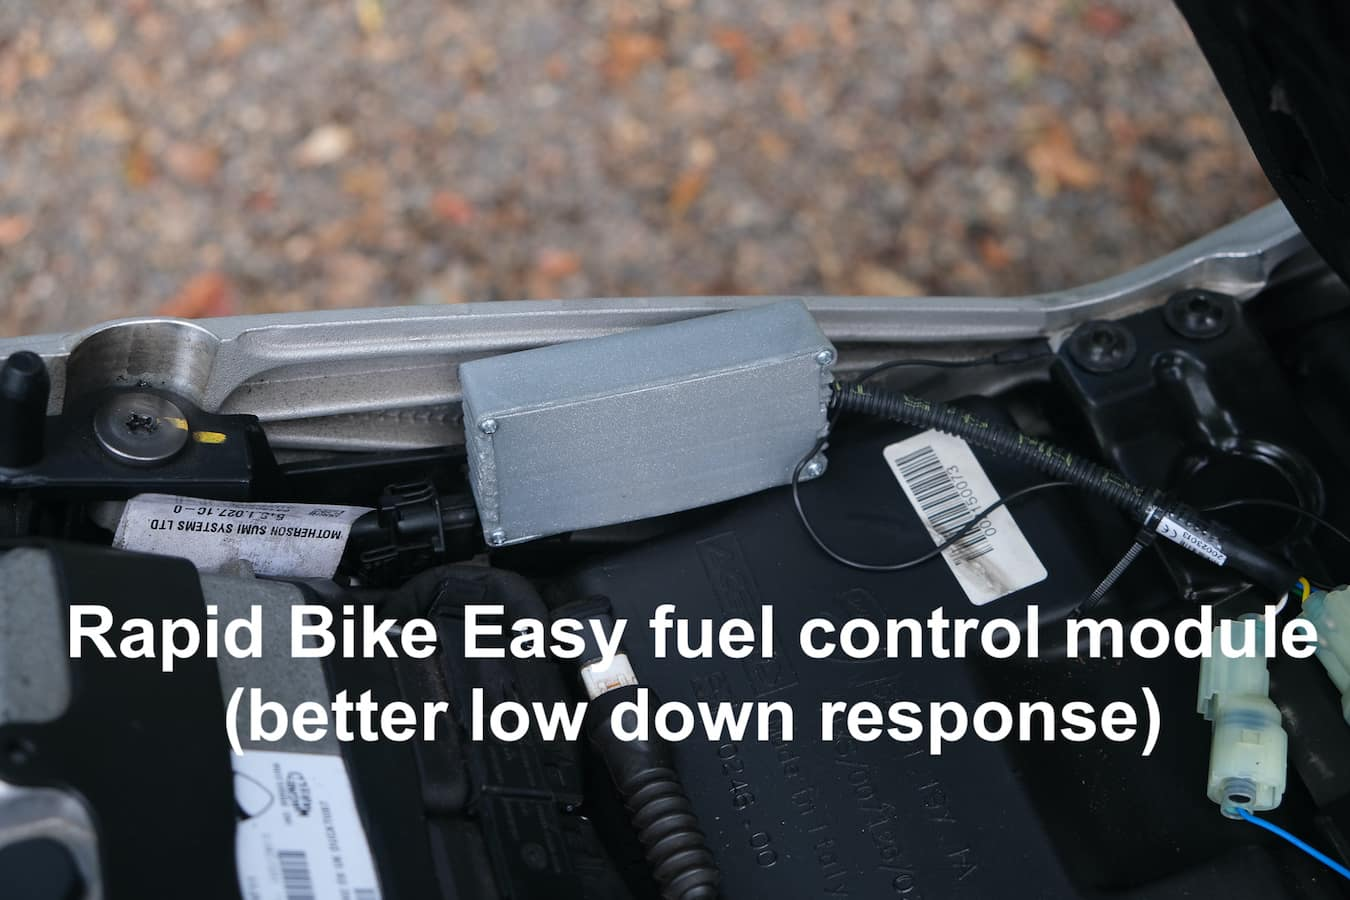 The Rapid Bike Easy fuel control module on the Ducati Hyperstrada 821 (same as Hypermotard install)